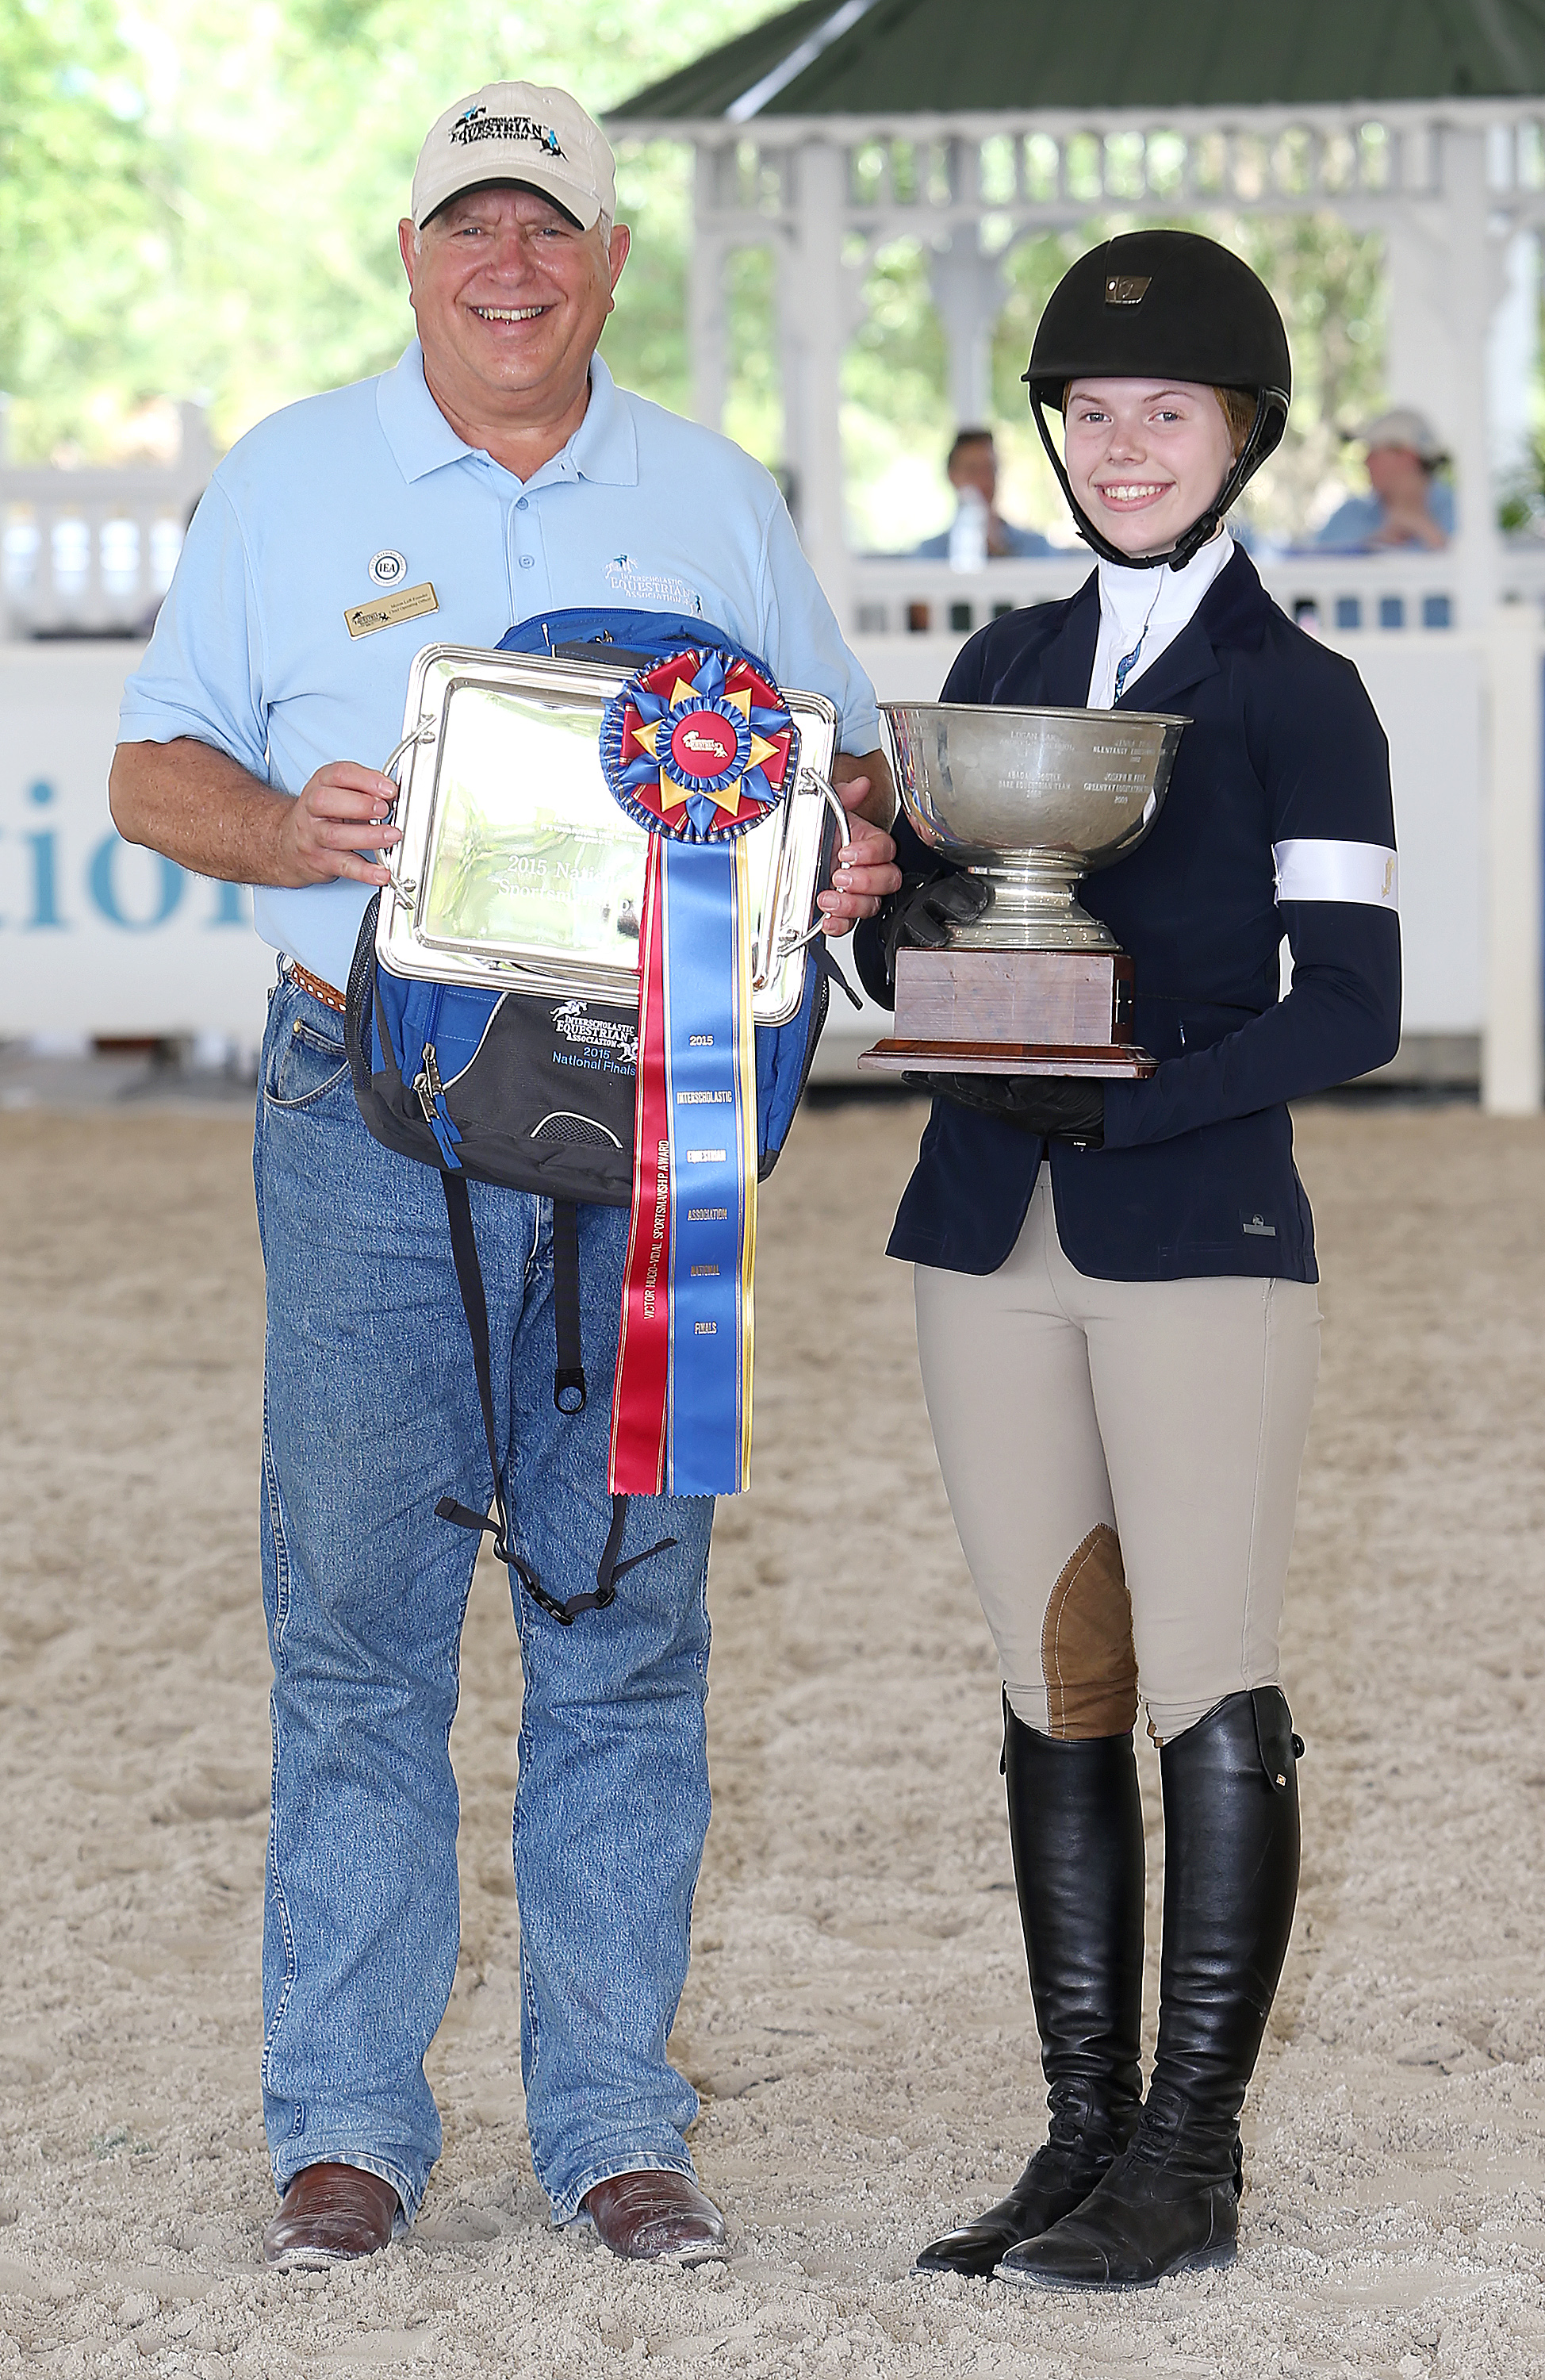 Kate Coffey - North Gate Equestrian Team - Sudbury, Massachusetts, Victor Hugo-Vidal Perpetual Trophy for National Finals Sportsmanship left to right: Myron Leff (IEA founder), Kate Coffey